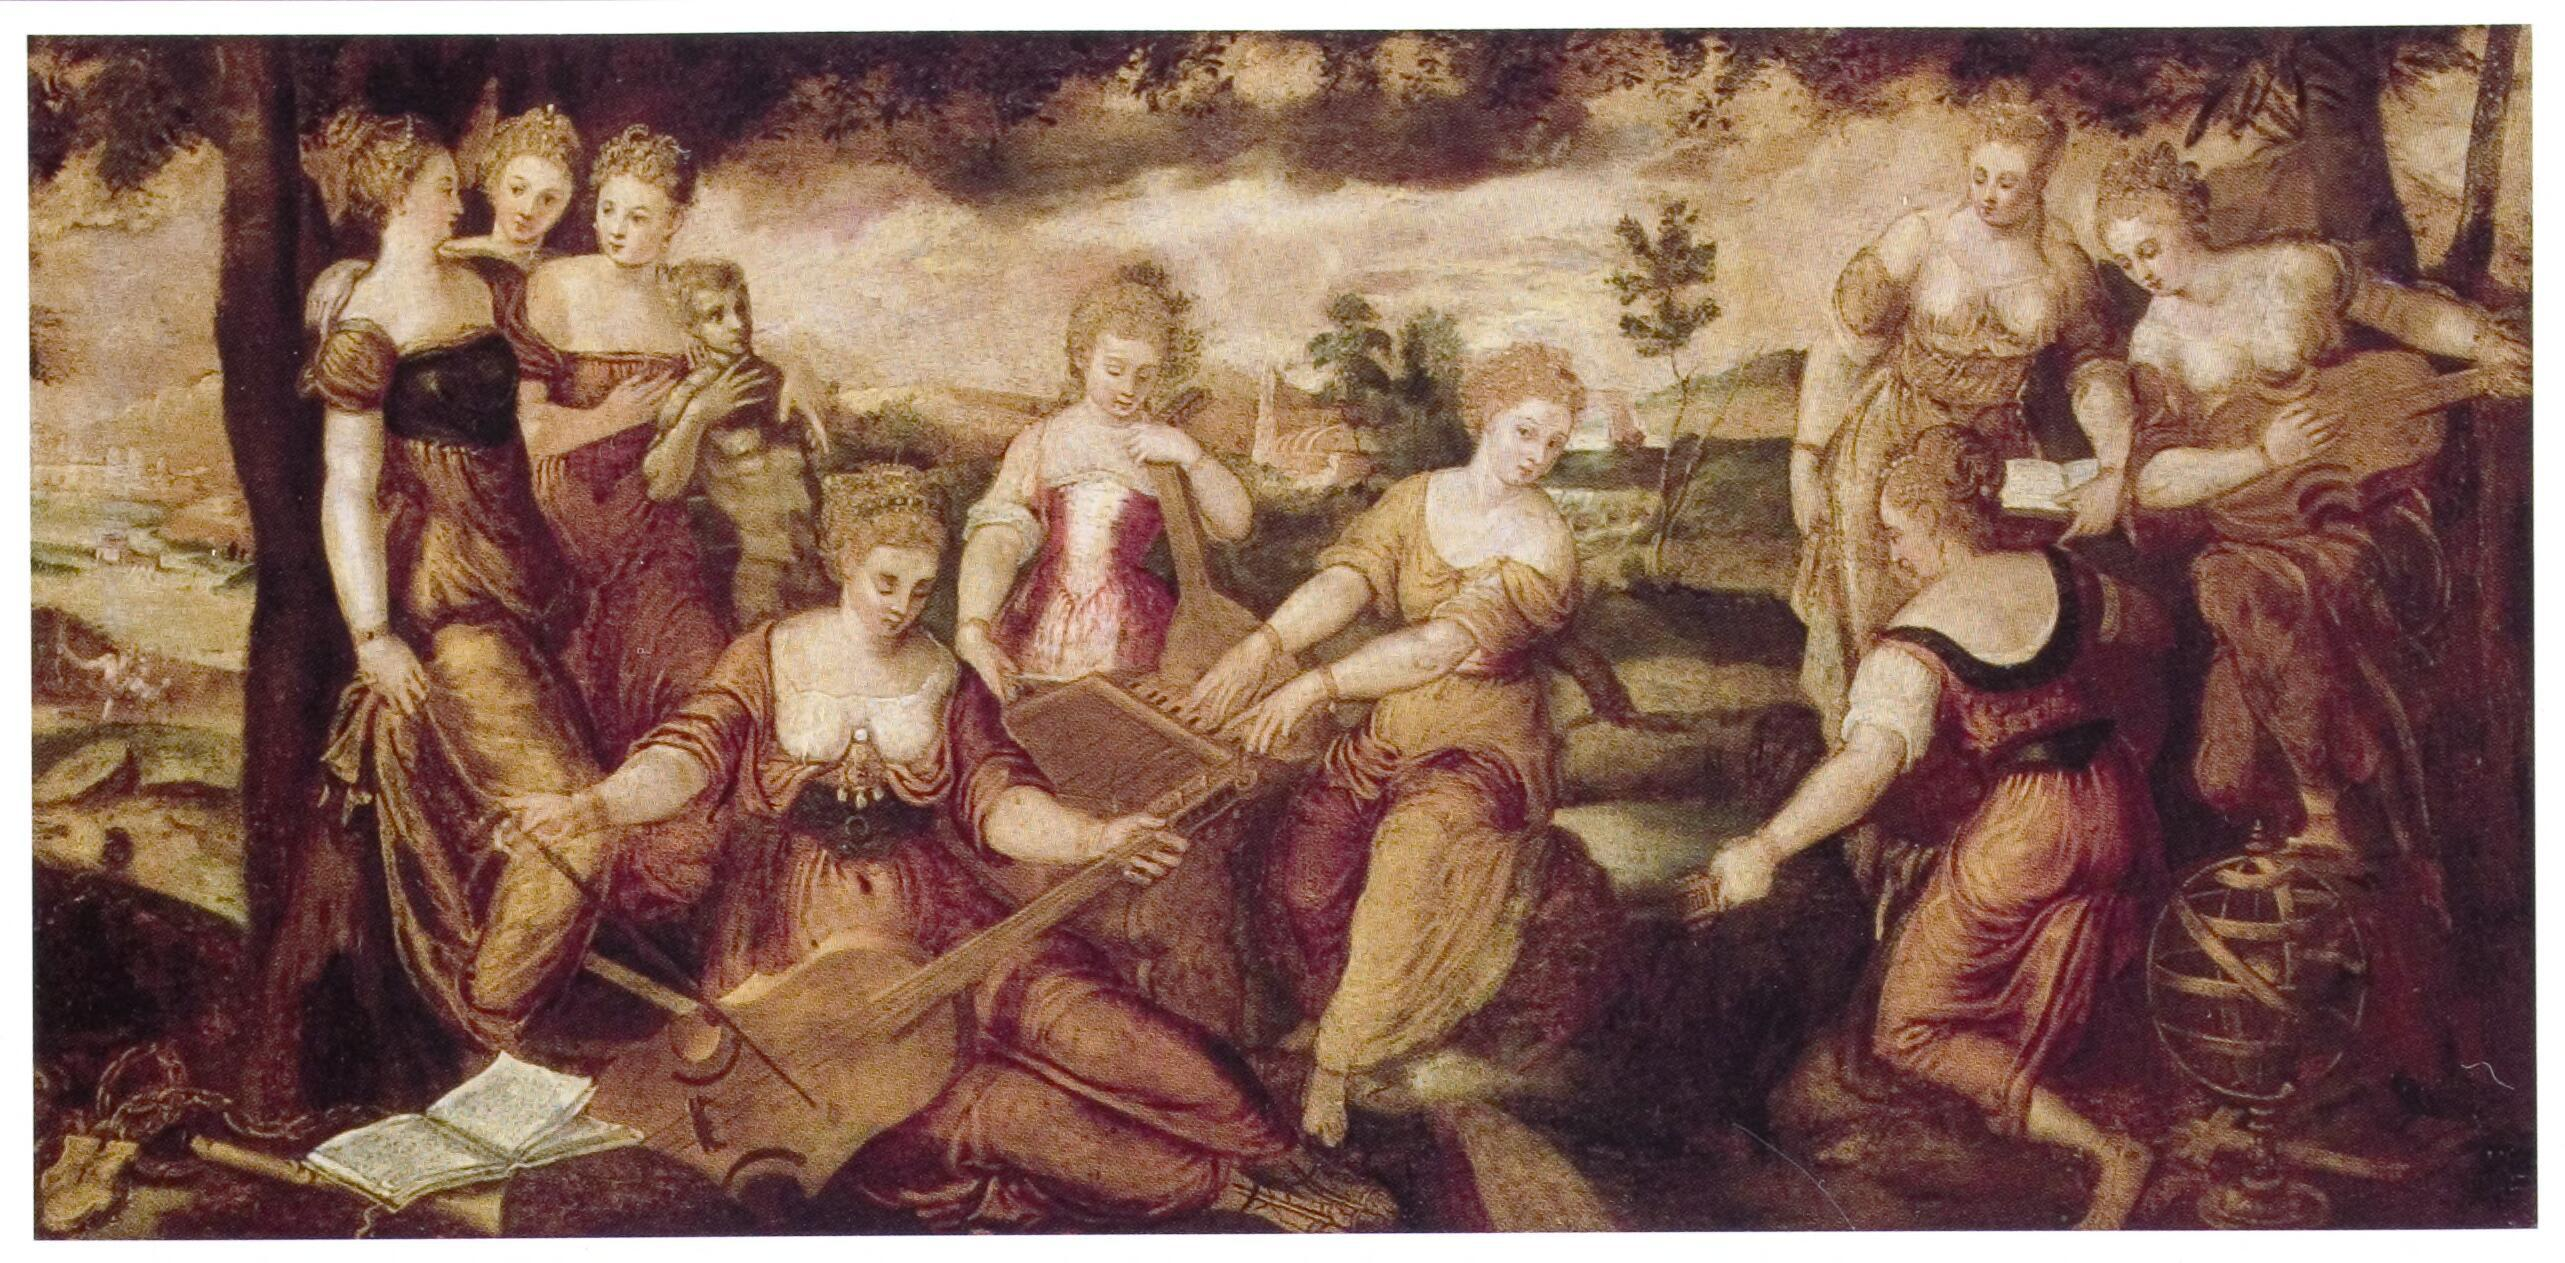 Another painting of the Muses of Greek mythology